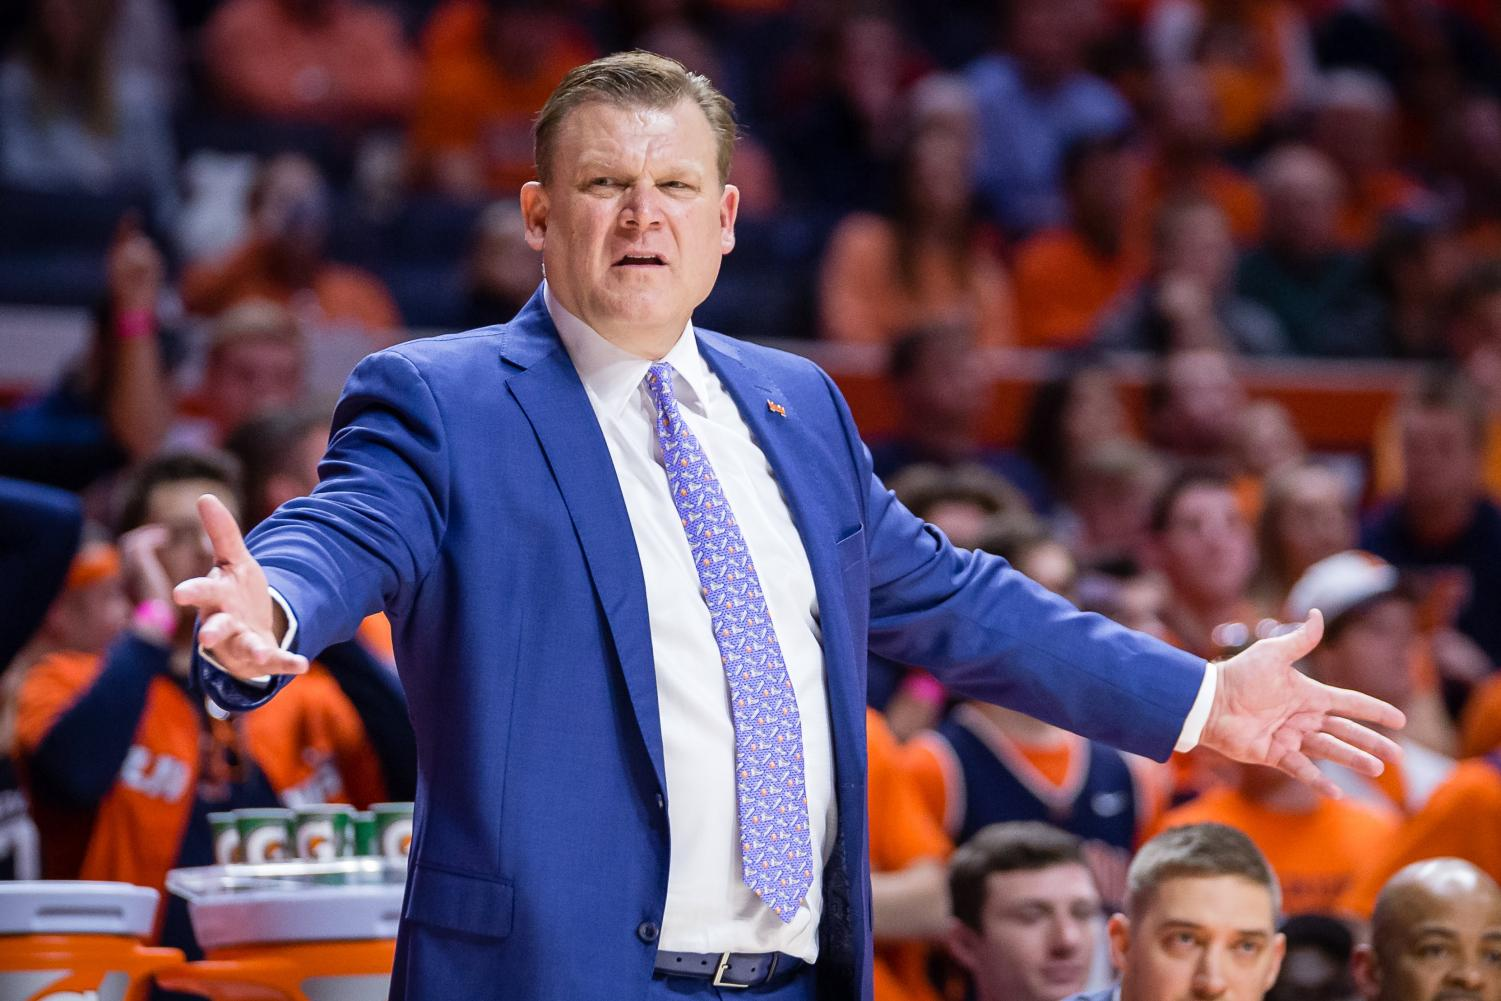 Illinois head coach Brad Underwood reacts to action on the court during the game against Wisconsin at the State Farm Center on Jan. 23. The Department of Intercollegiate Athletics has cleared Underwood of player abuse allegations during the 2017-18 basketball season.